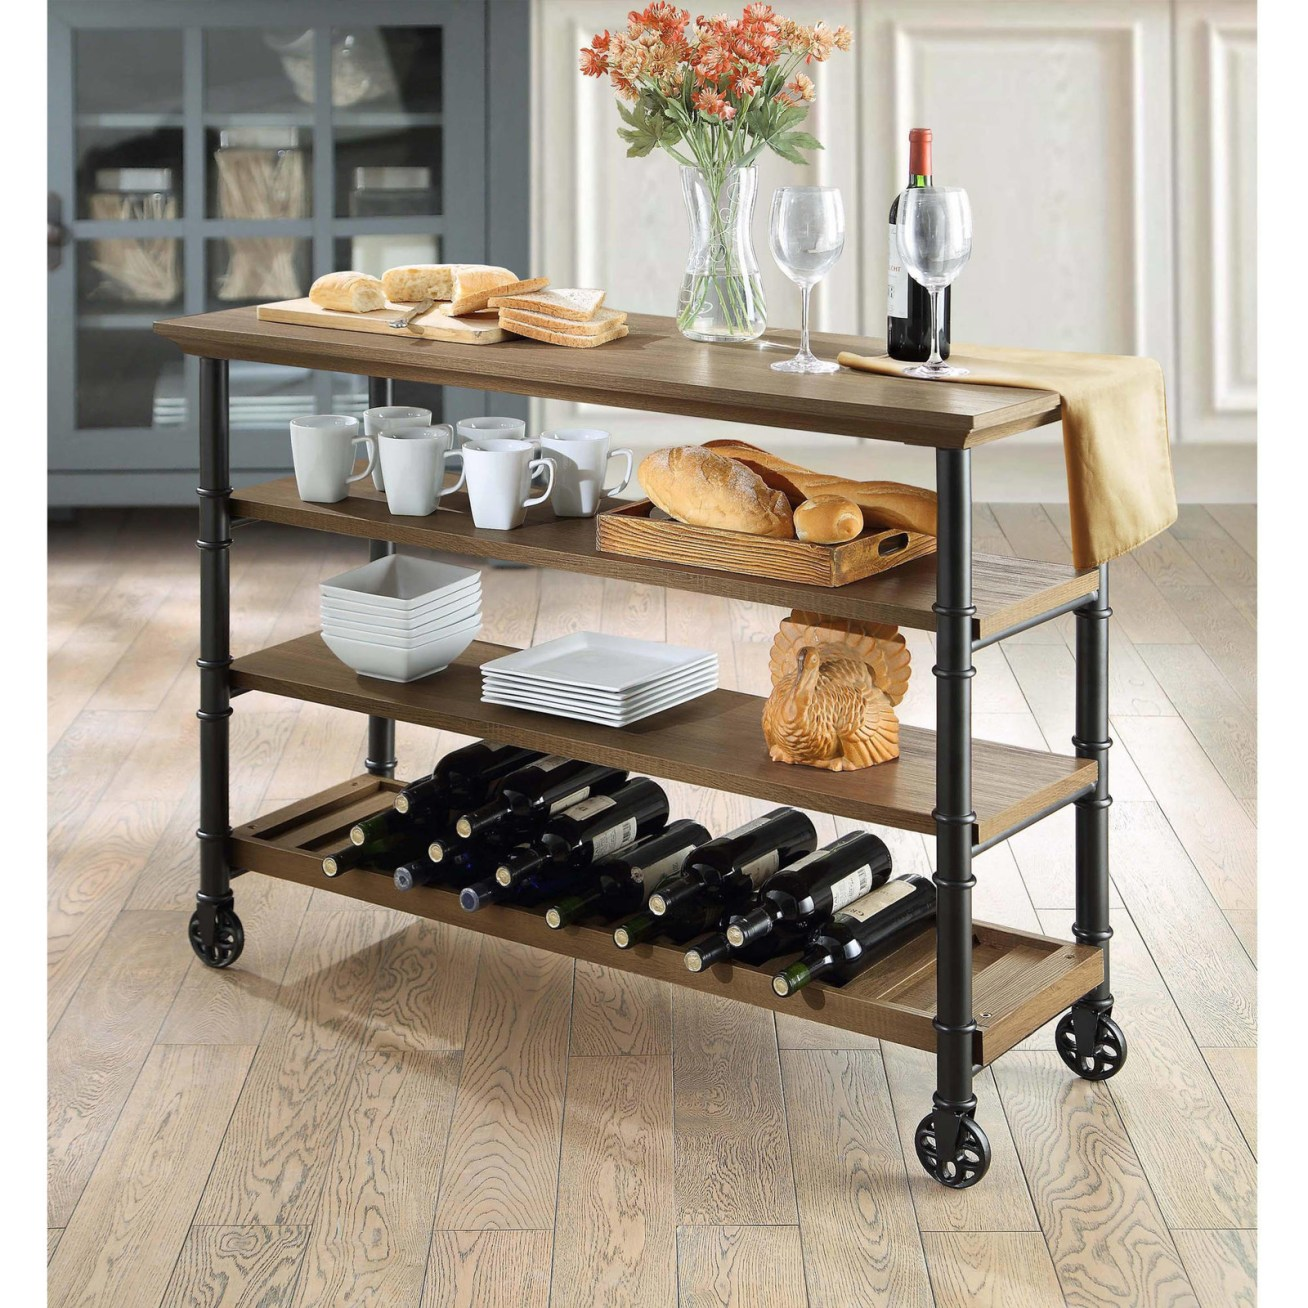 "Promising review: ""I have two of these and bought them specifically to help free up some of the cabinet space in my kitchen and to store wine. It is a solid, quality piece of furniture and adds a nice industrial-rustic quality to the space. The finish on both the wood and metal pieces are smooth. Although the feet are circular, they are not wheels and do not move. The bottoms of the feet are actually sufficiently flat, making for a stable stand. It was quite easy to put together, taking less than 25 minutes. All-in-all, it's a great design and I couldn't be happier with it."" —HoustonStrongPrice: 9"